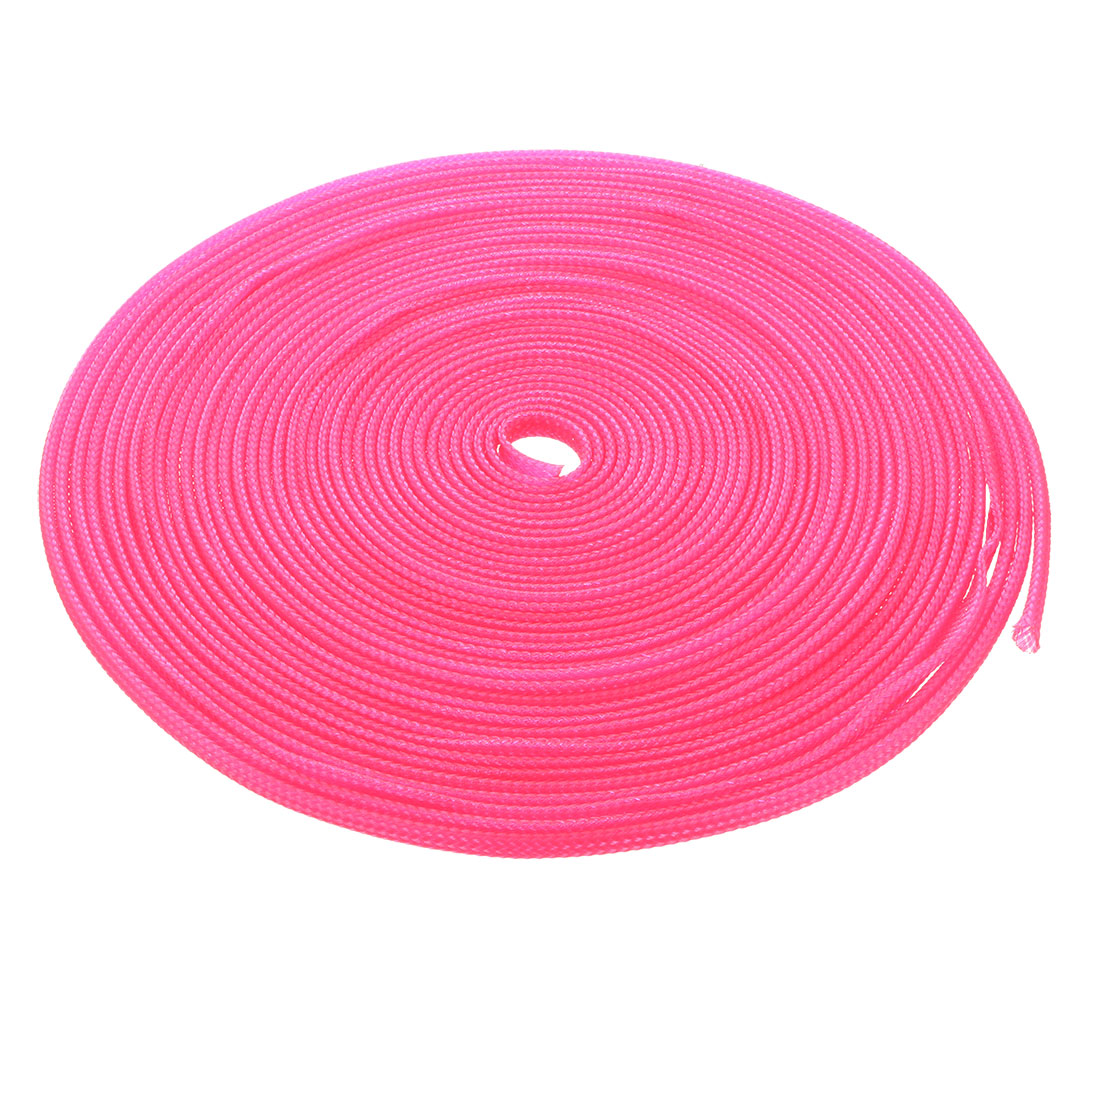 3mm Dia Tight Braided PET Expandable Sleeving Cable Wire Wrap Sheath Pink 10M